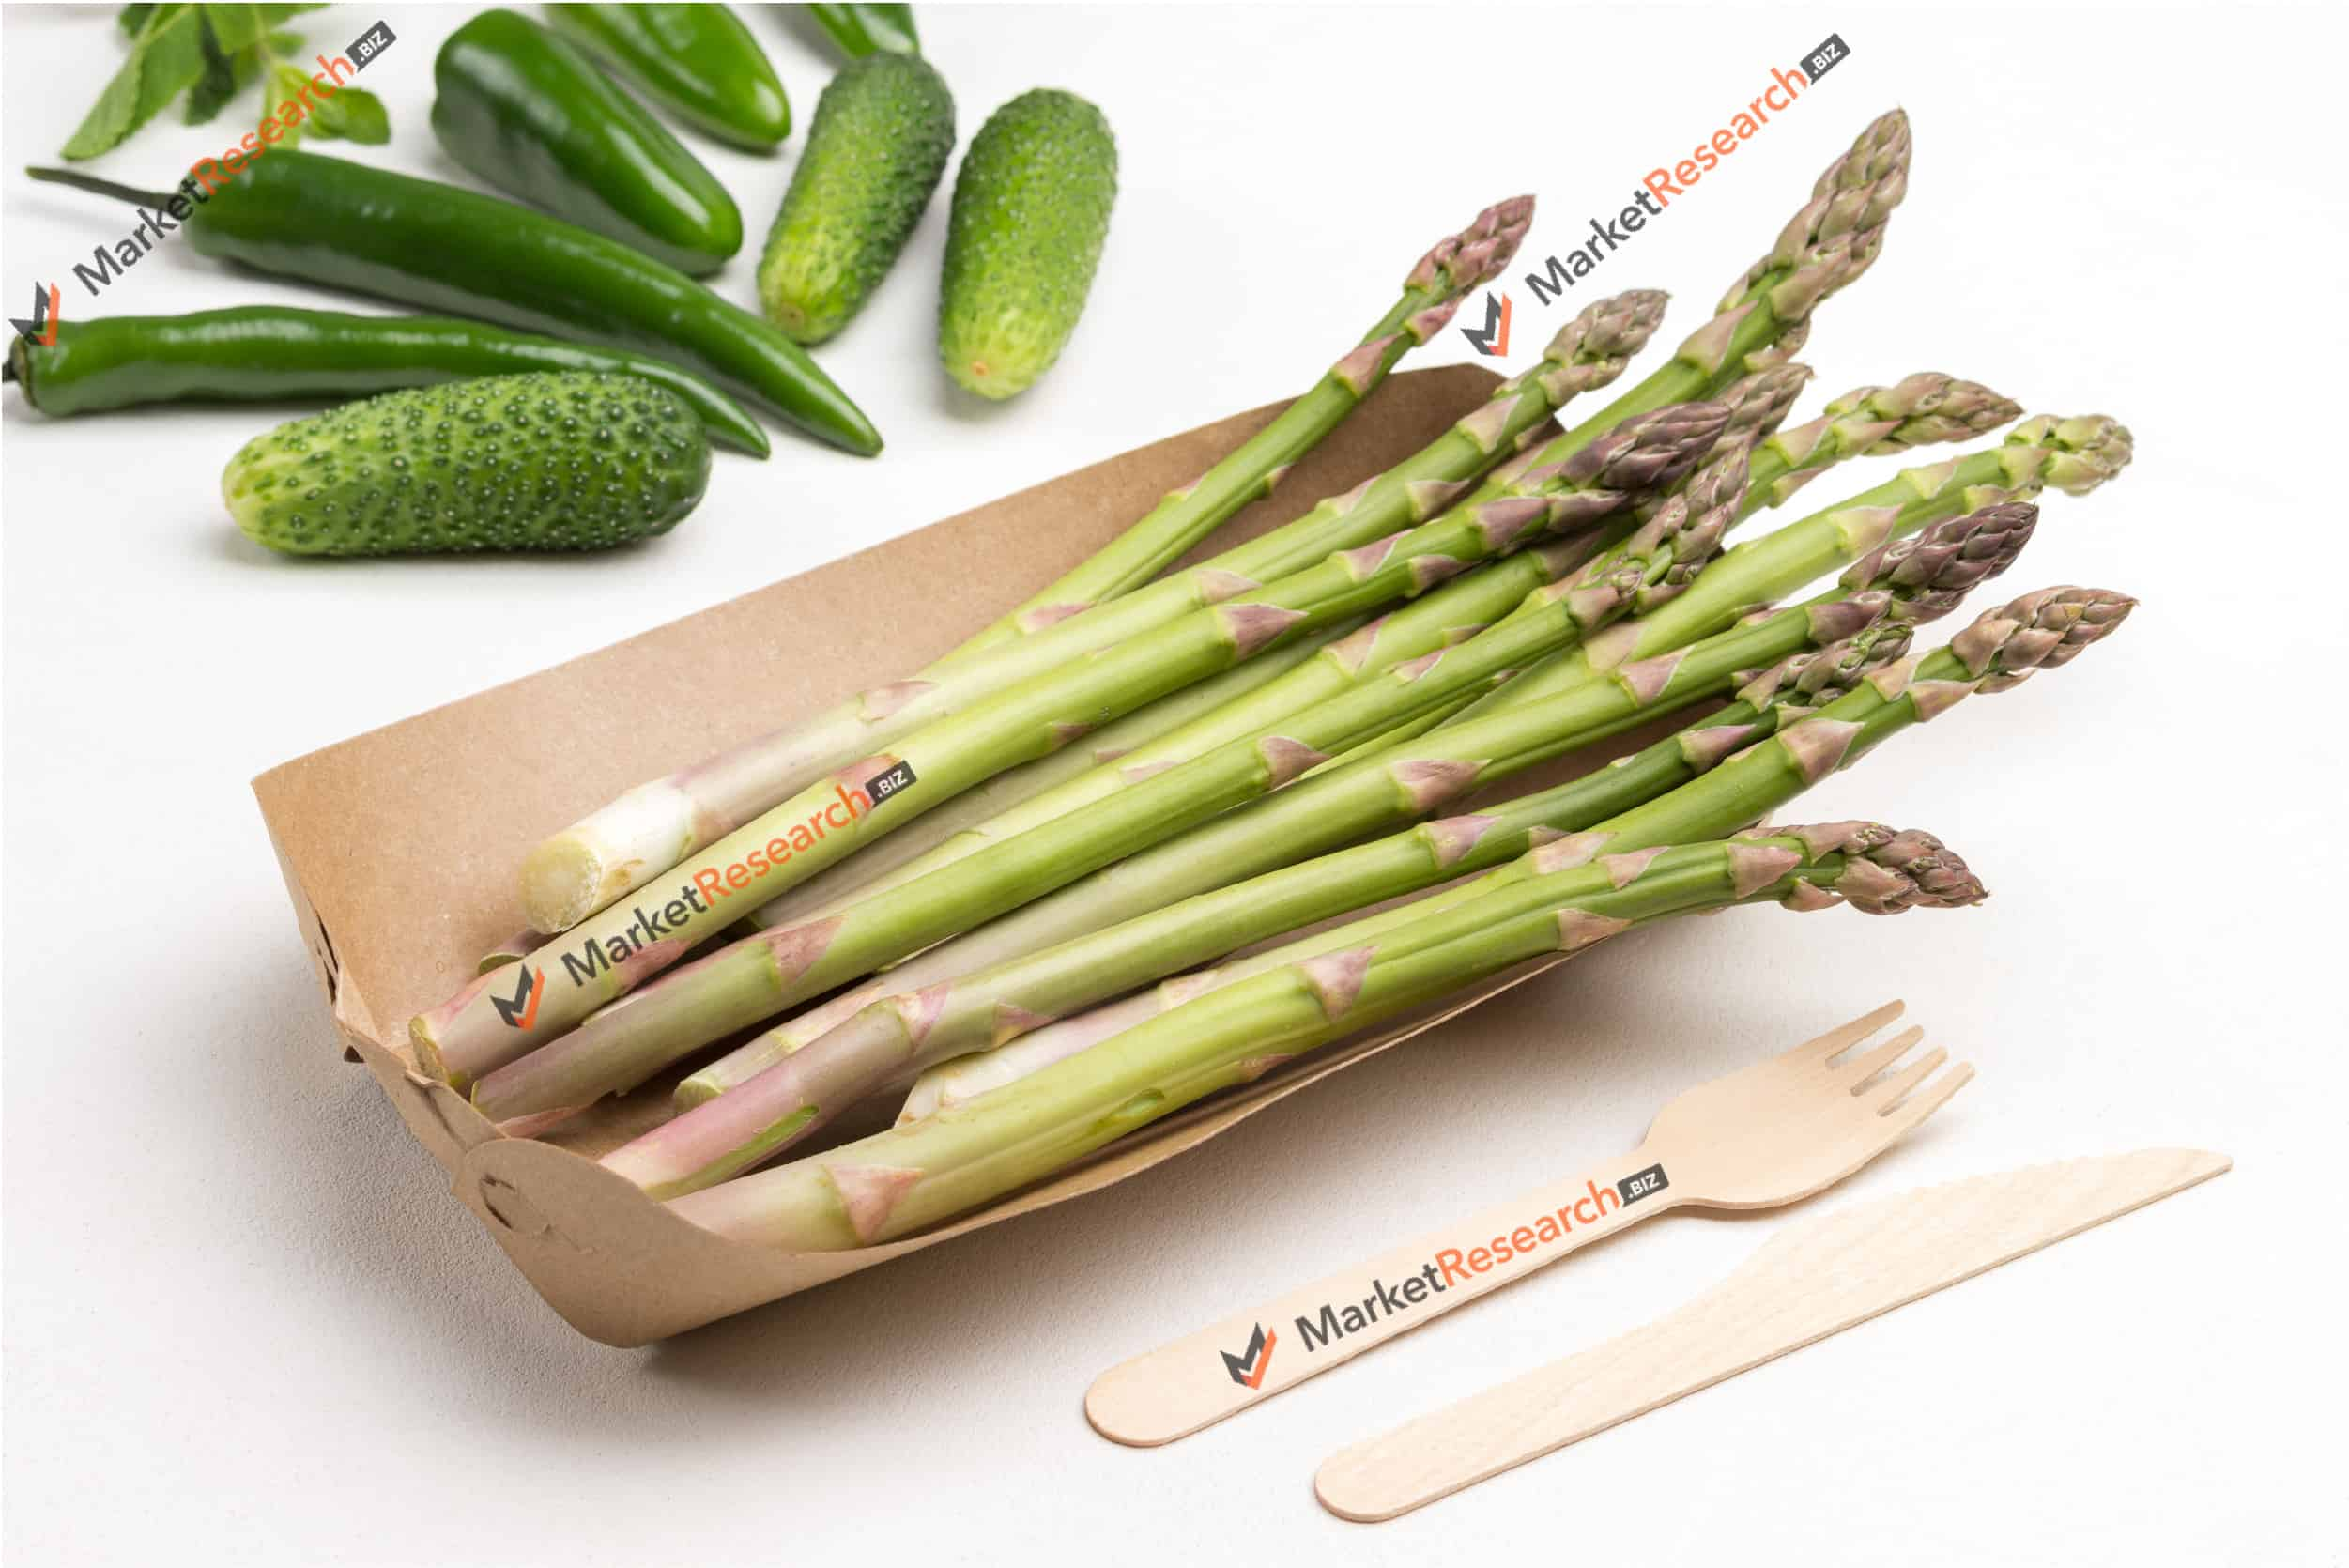 Fresh and Packaged Asparagus Market